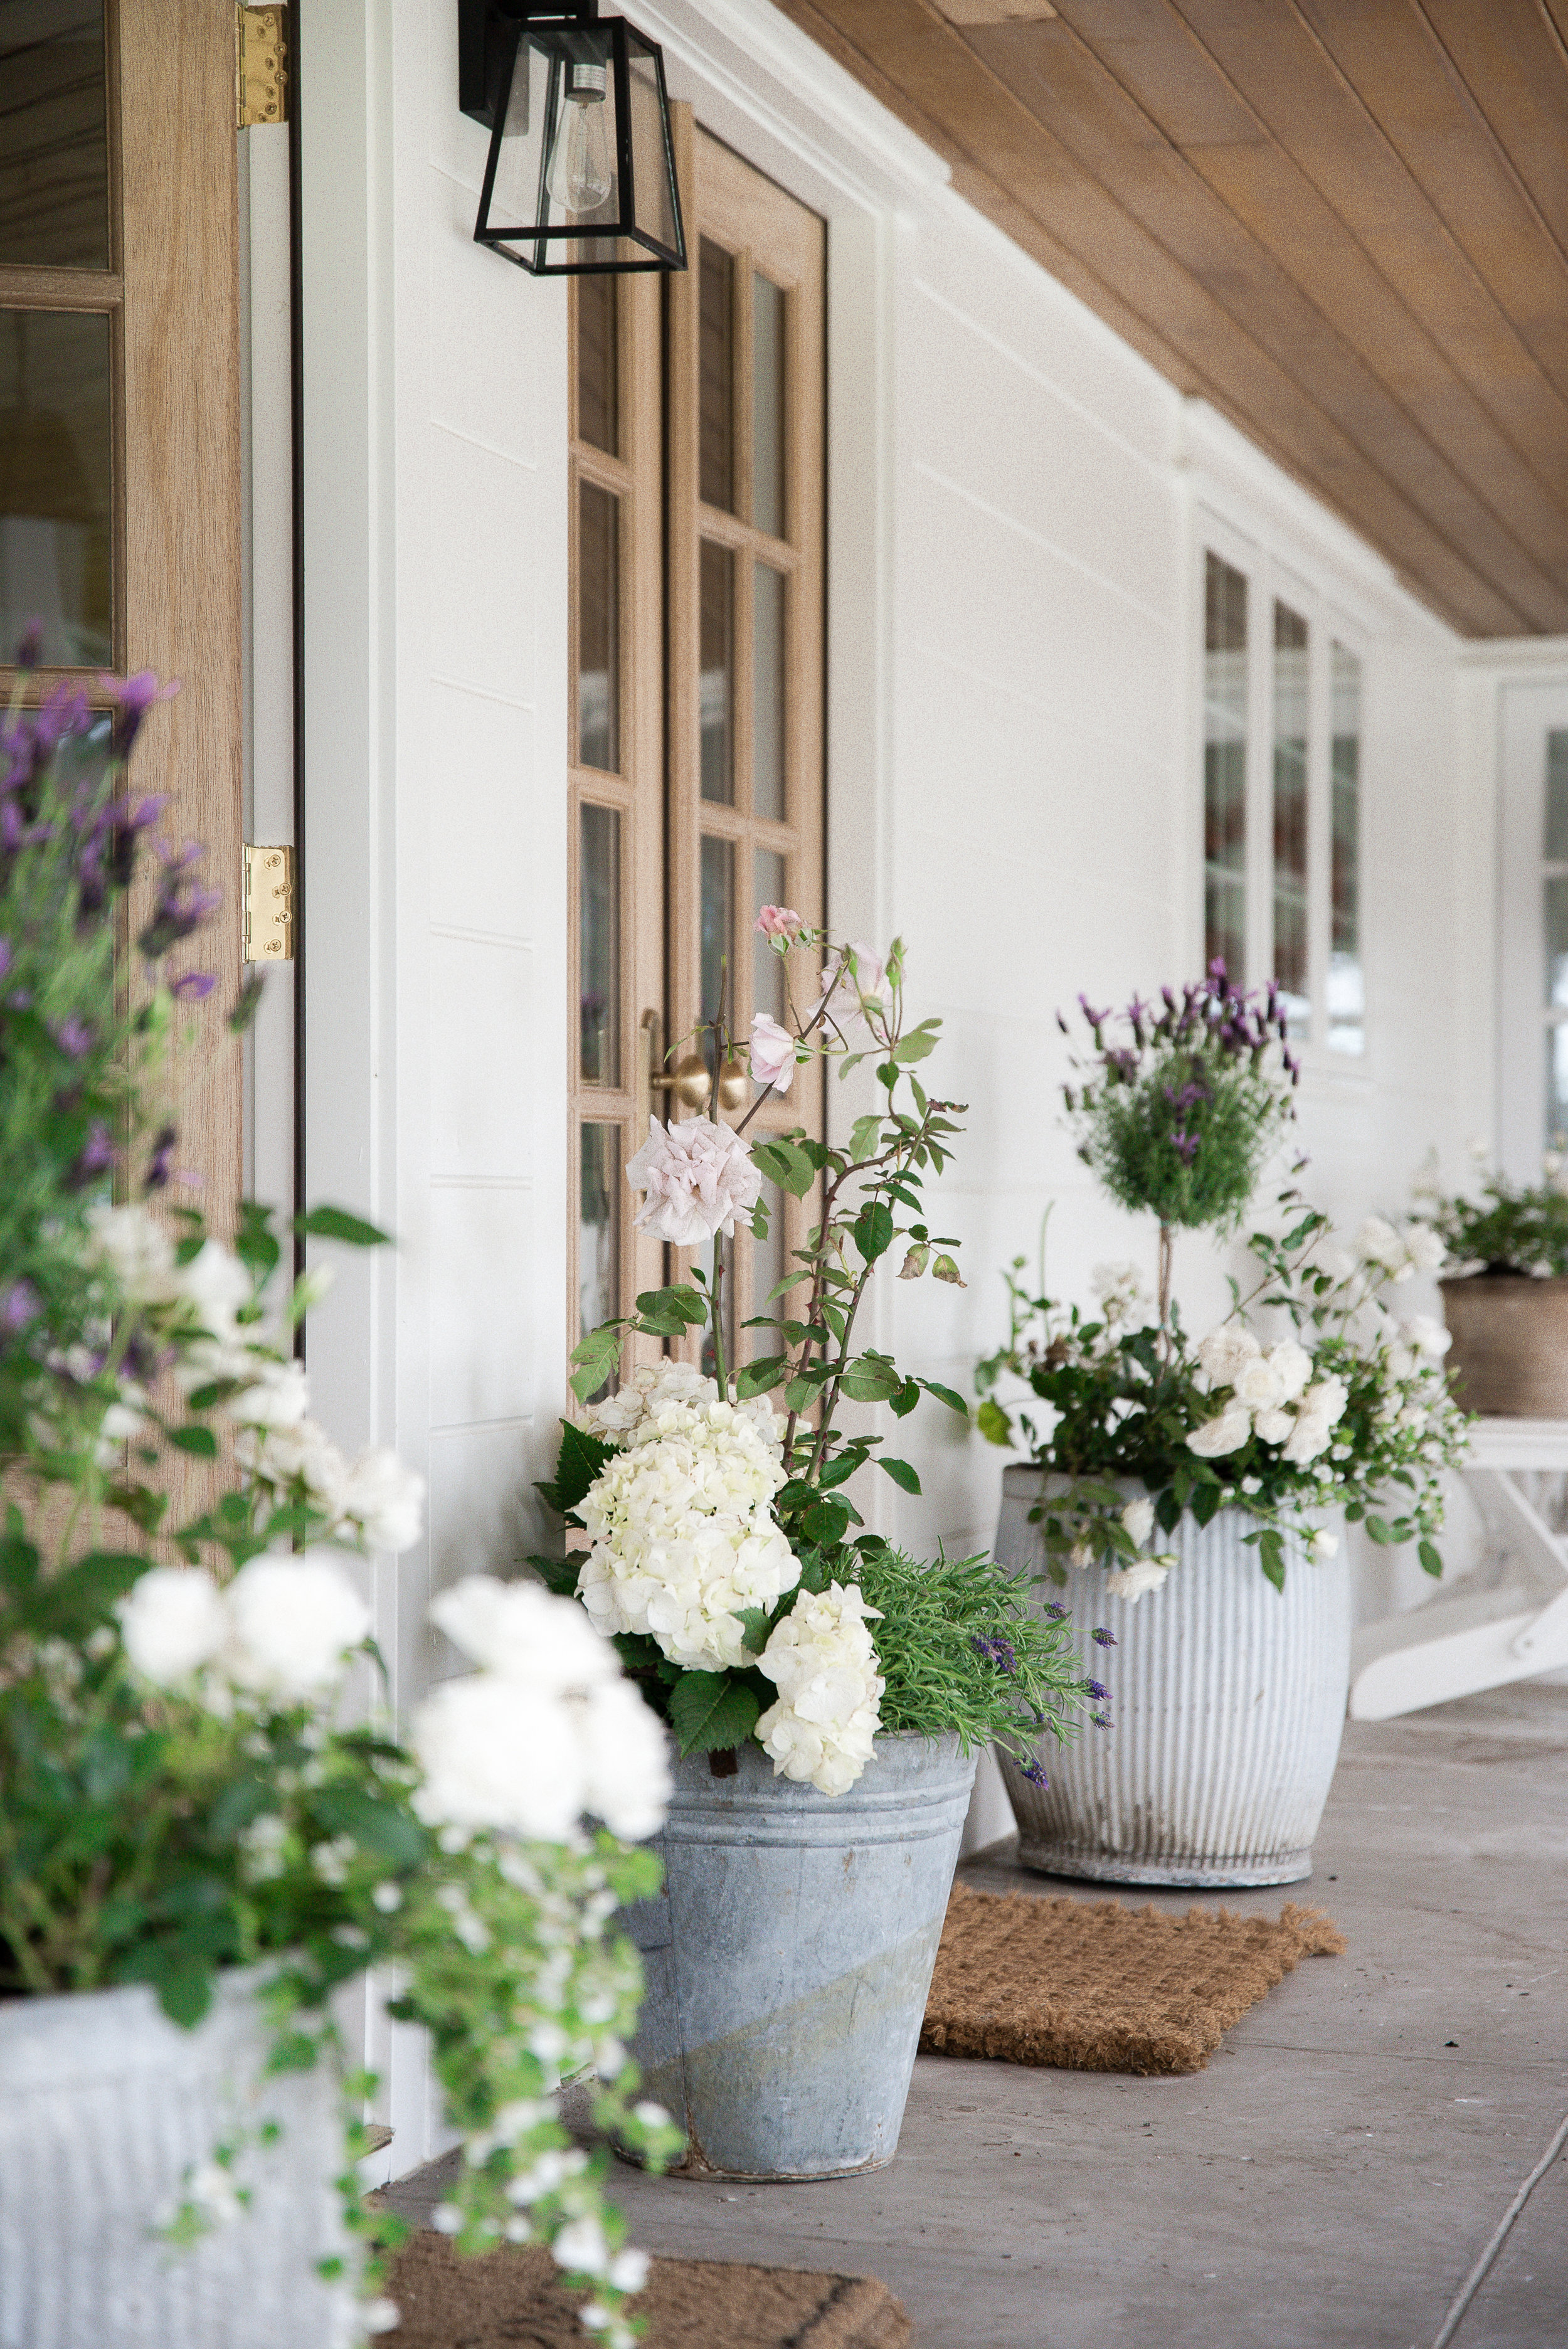 Beautiful summer flower pot and farmhouse porch design by Boxwood Avenue  - Lavender topiary, hydrangea, and roses in vintage galvanized pots. #flowerpots #summergardening